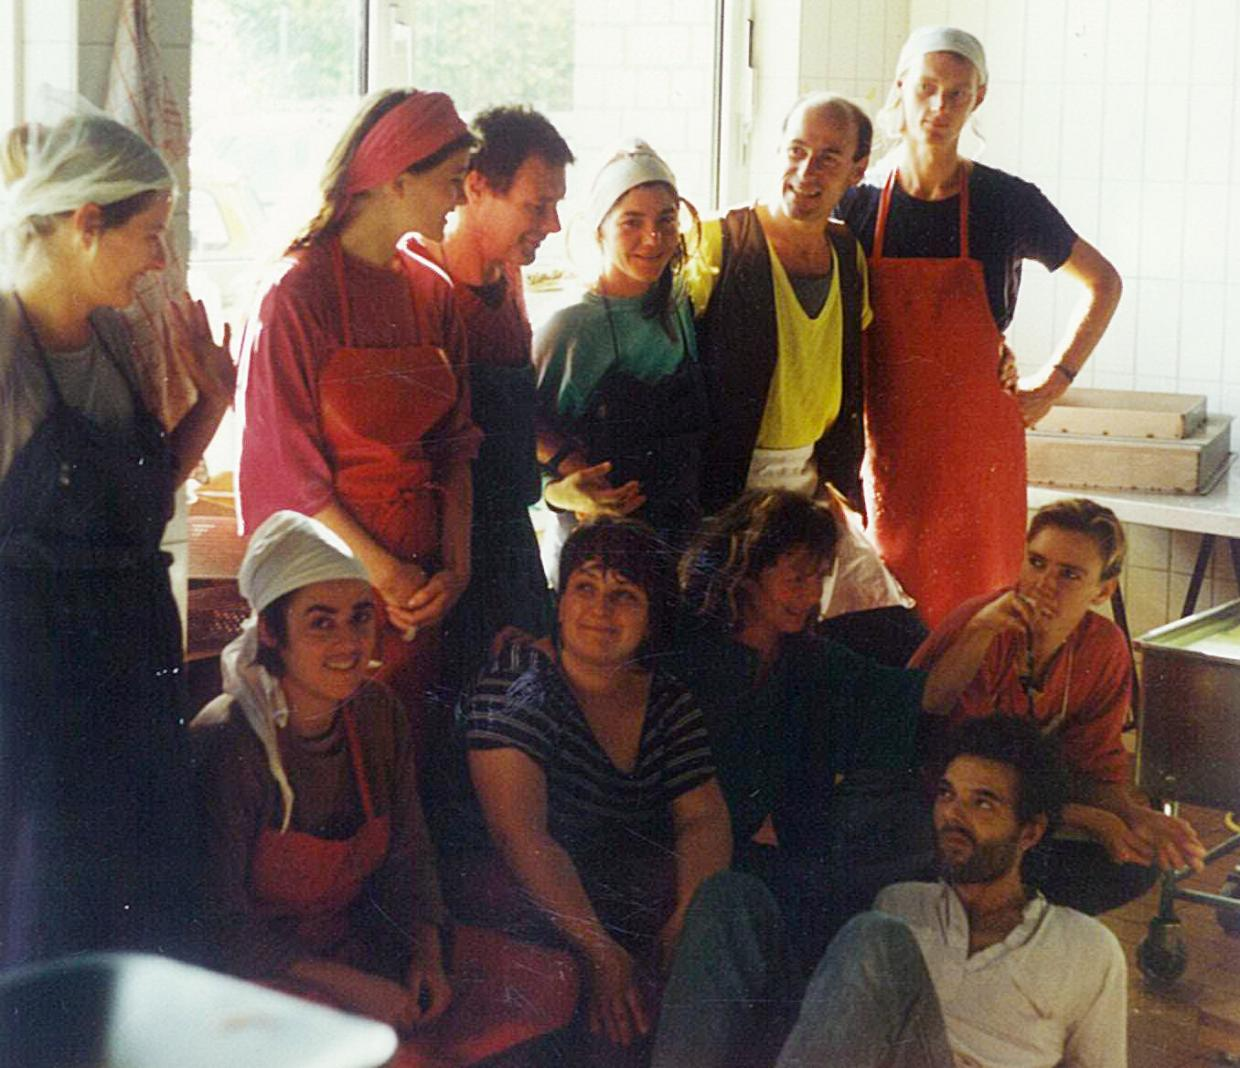 Our founders and their team: Klaus (top row, 3rd from the left) and Wolfgang (top row, 2nd from the right).